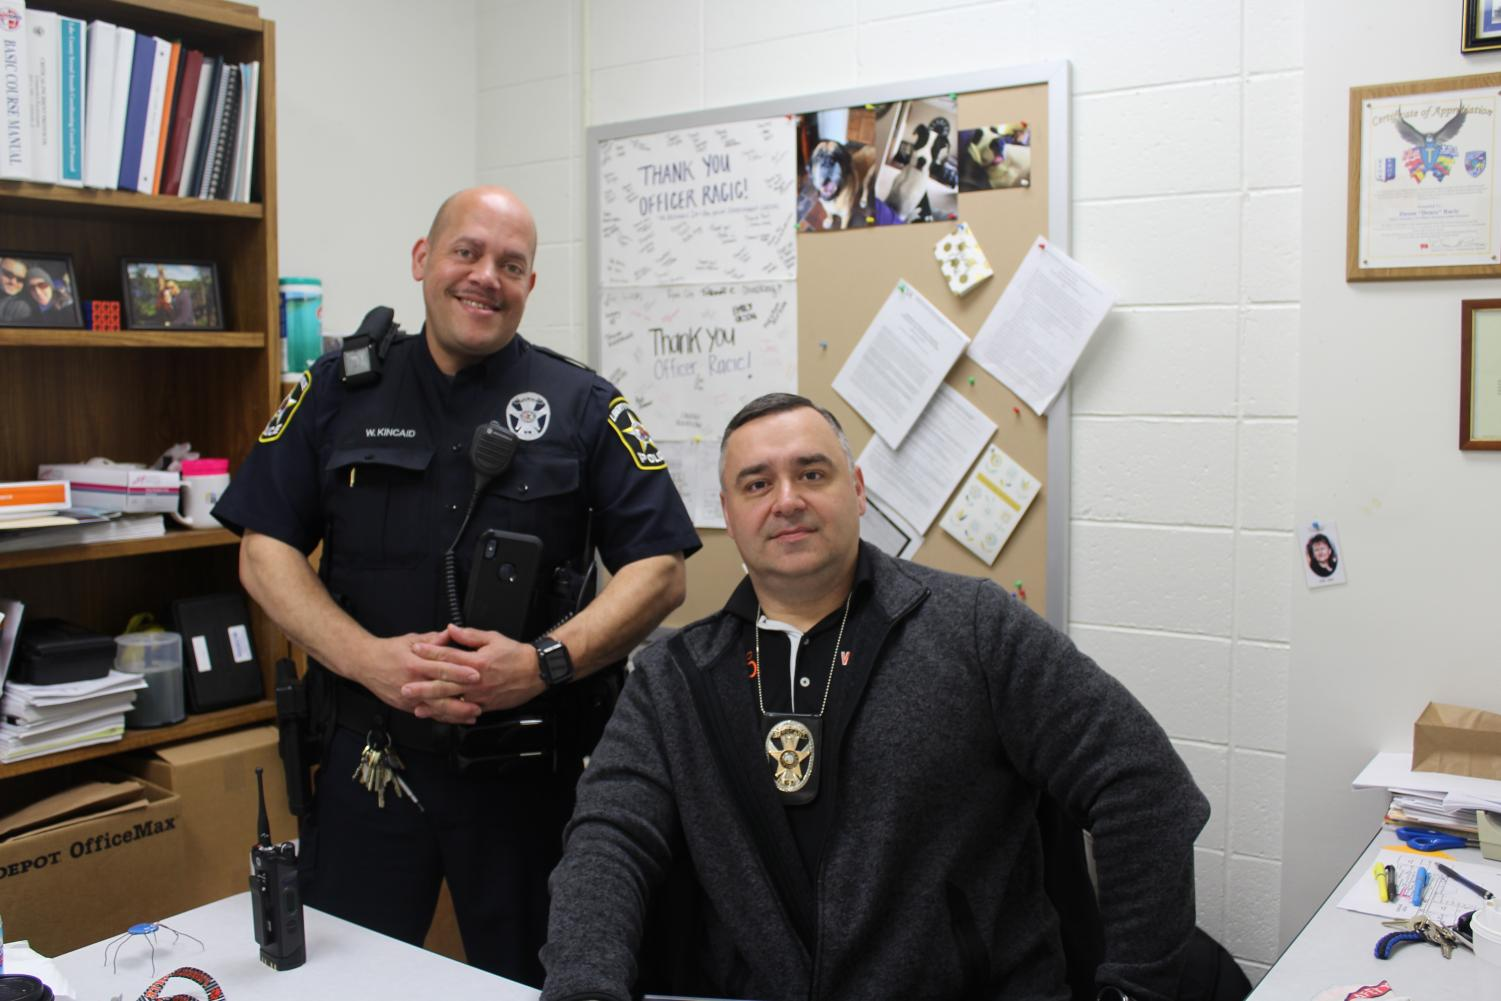 Current SRO Dusan Racic (right) has been promoted to Sergeant at the Libertyville Police Department and will leave LHS at the end of the 2018-2019 school year; Officer Wayne Kincaid (left) will take over the SRO duties.